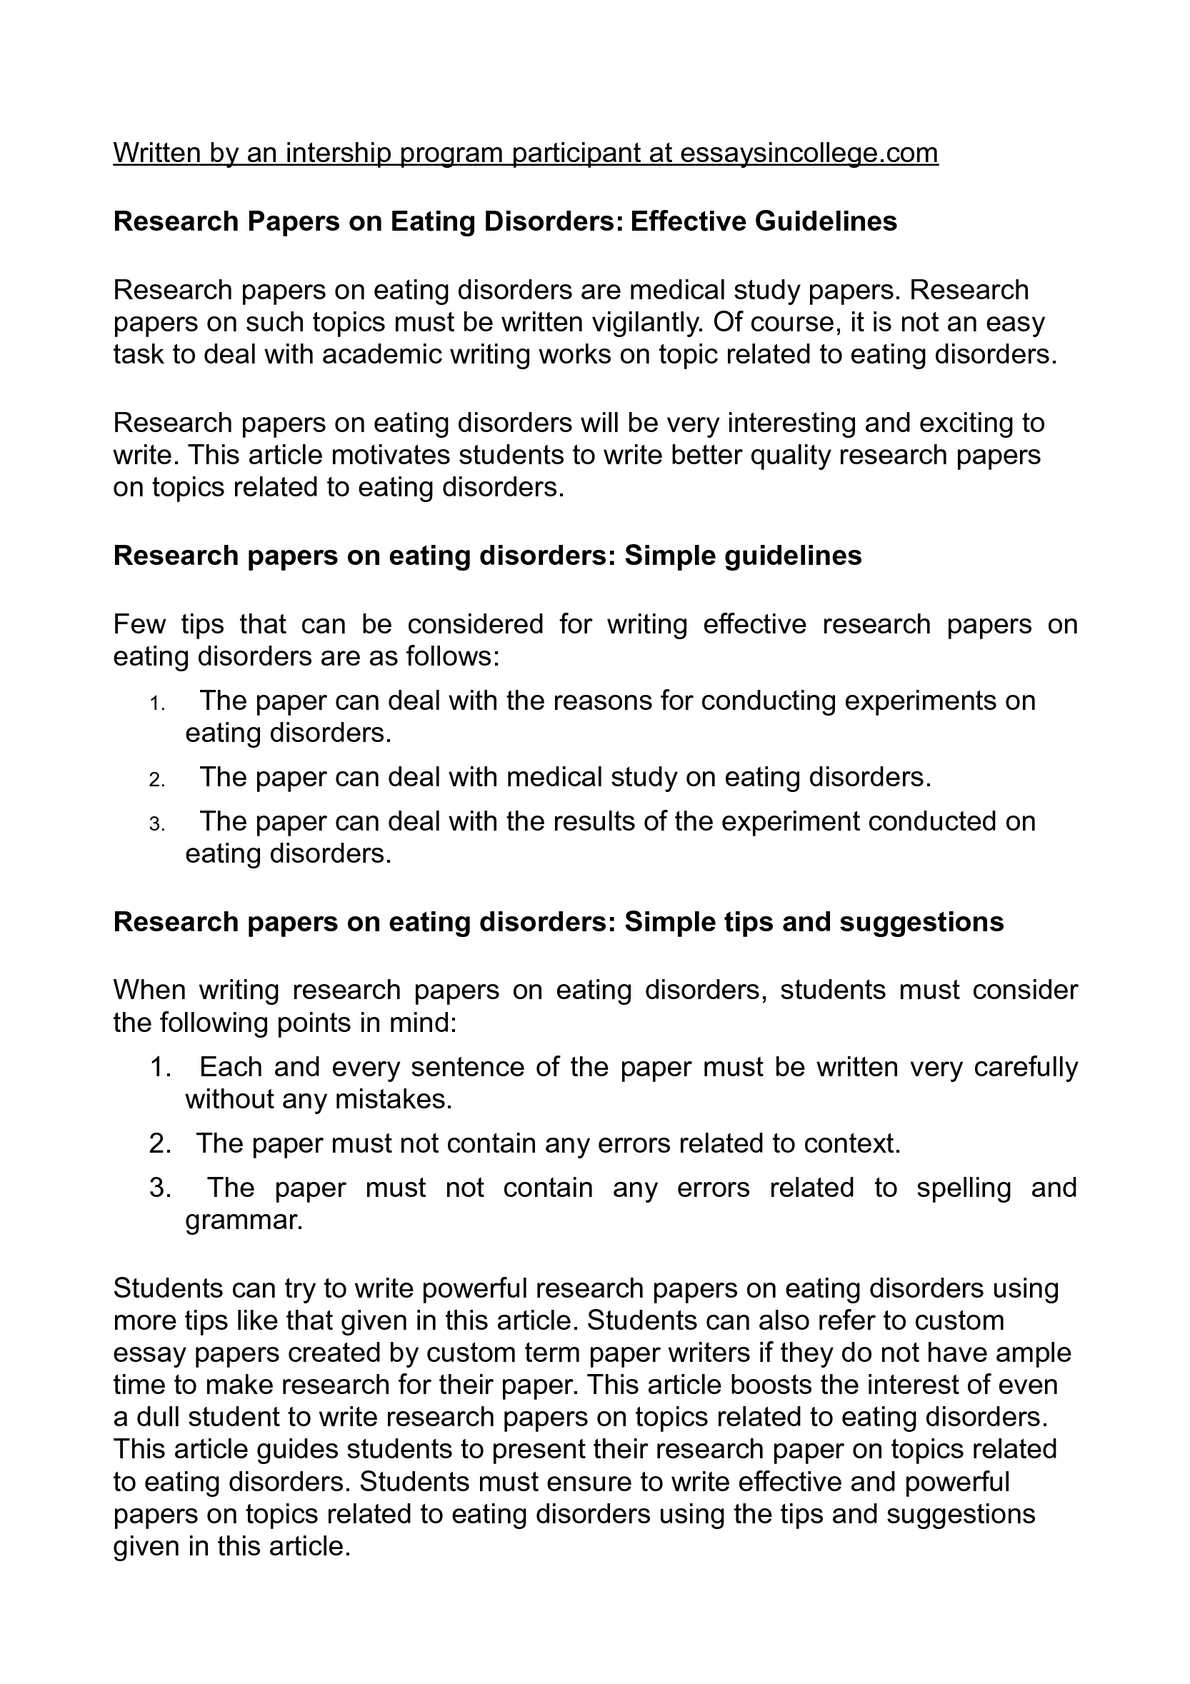 006 Examples Of Research Papers On Eating Disorders Paper Frightening Full